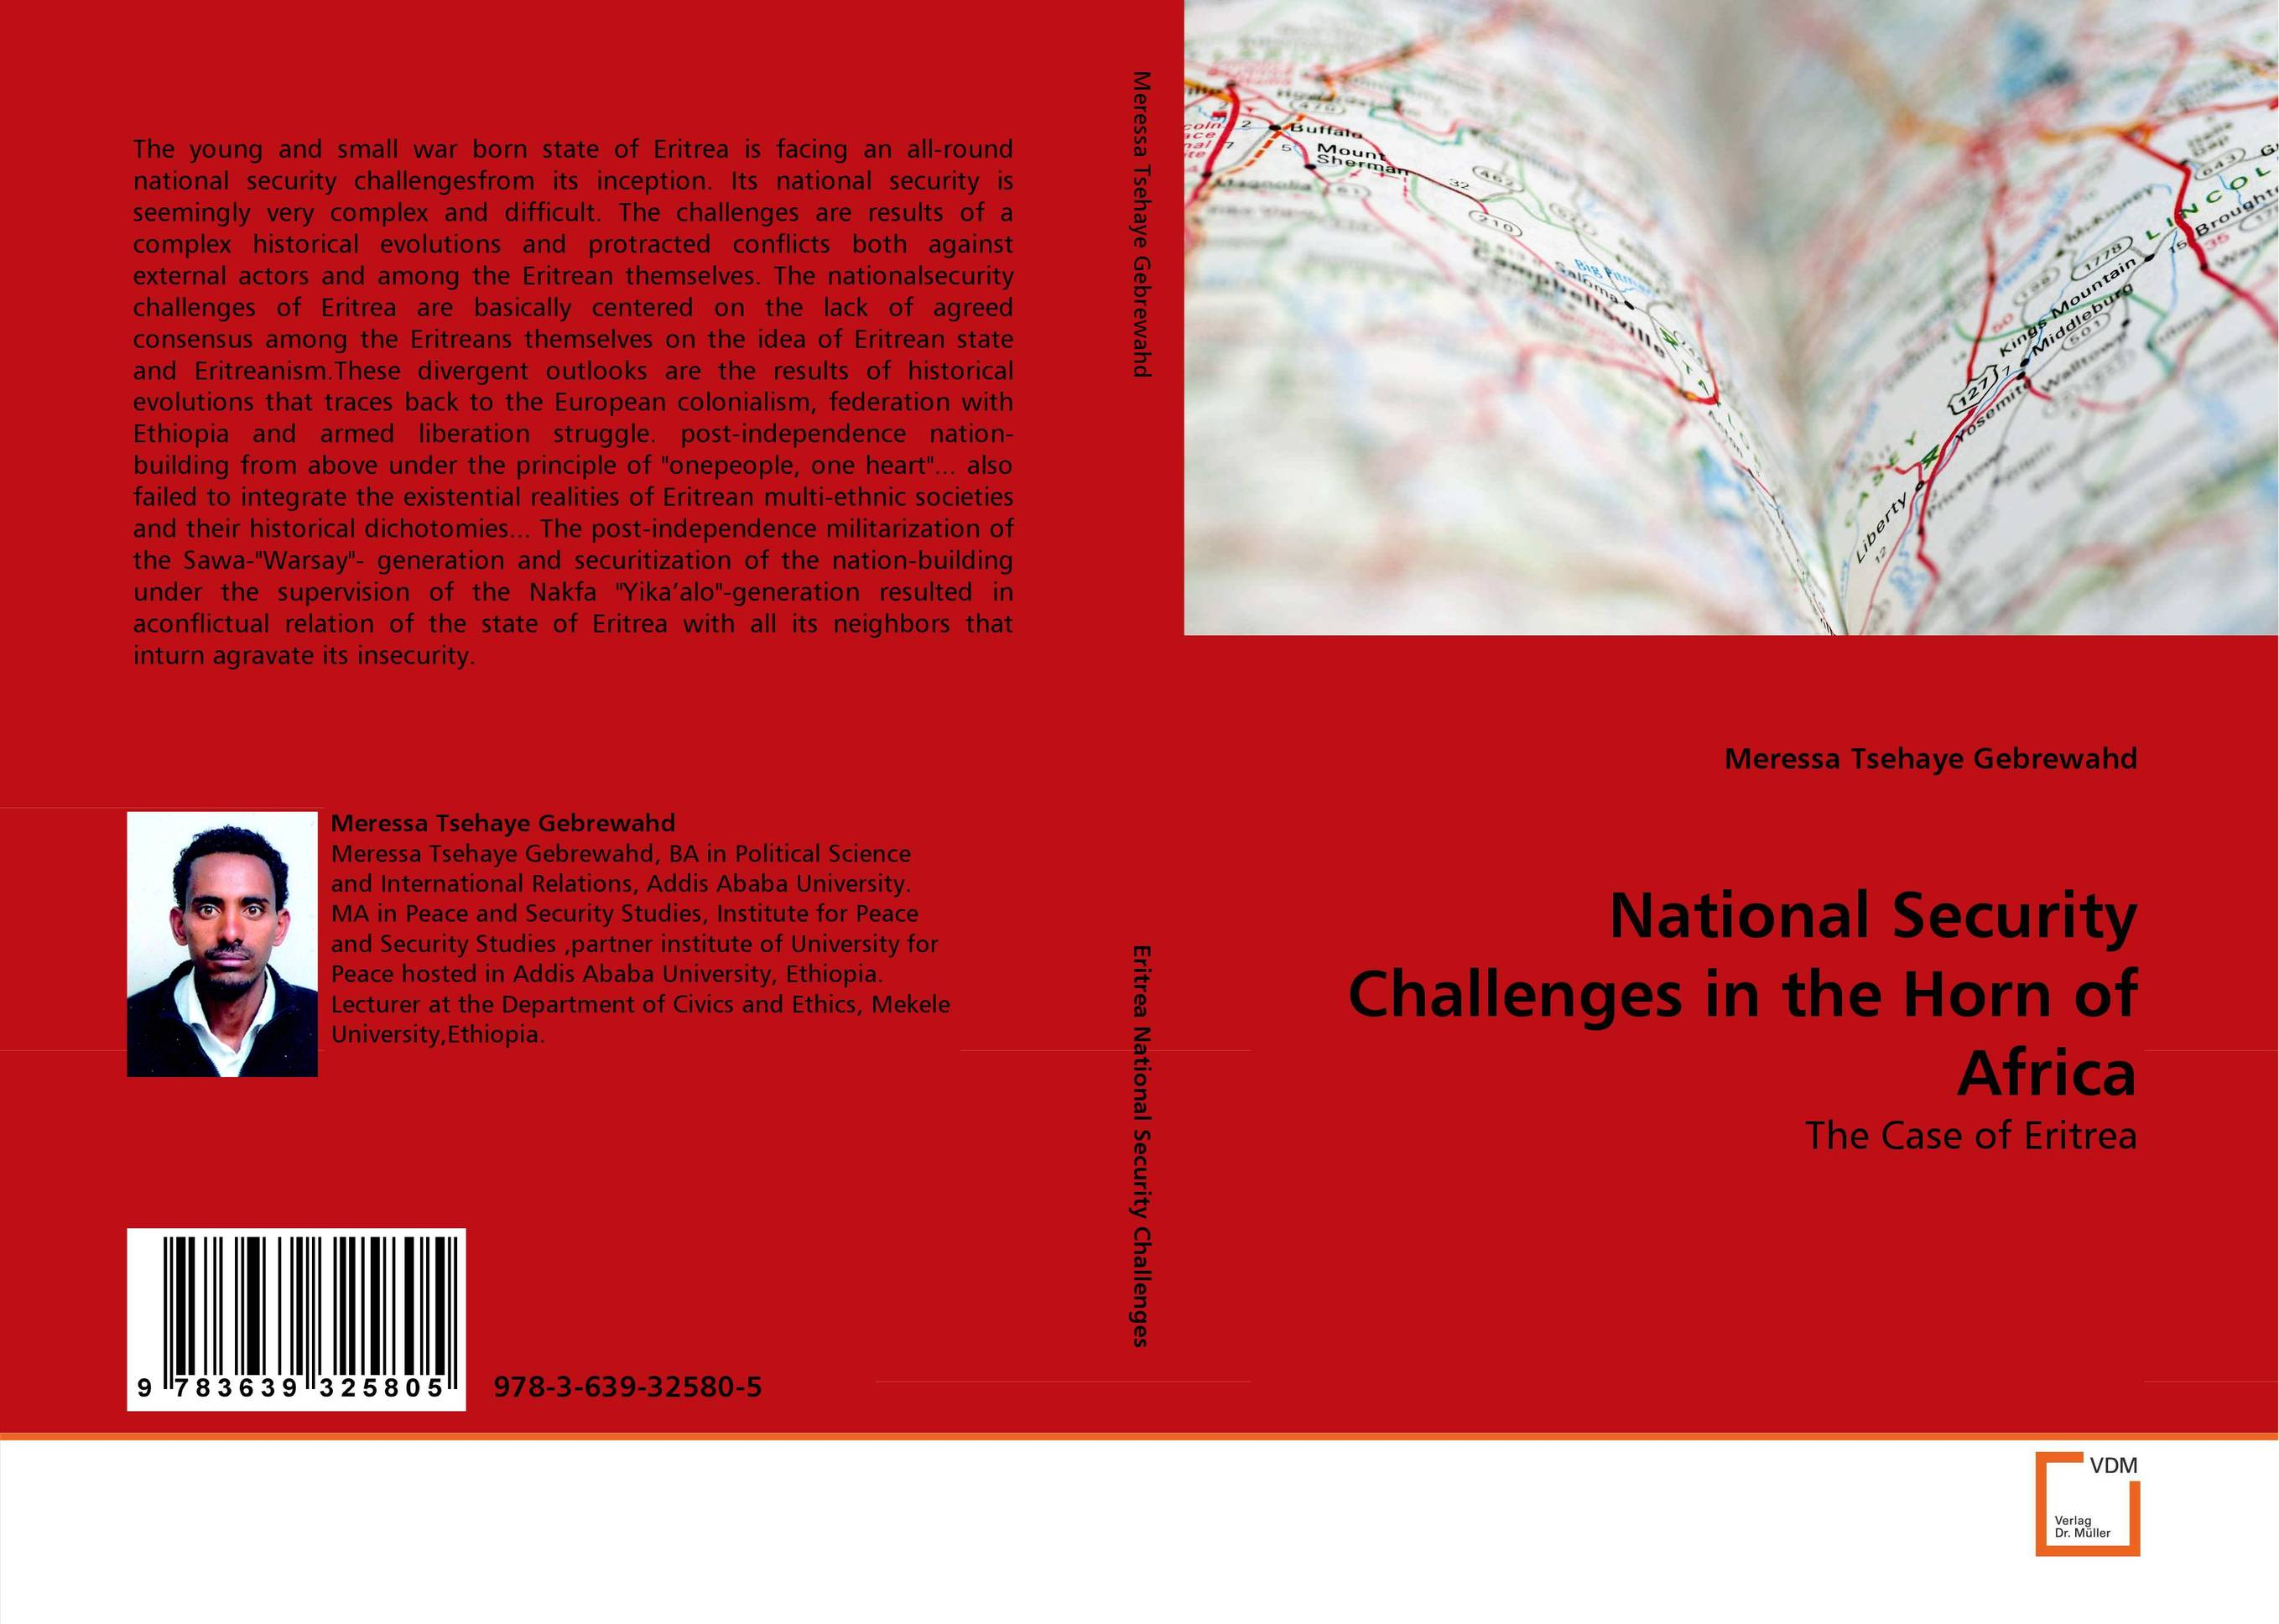 National Security Challenges in the Horn of Africa dimensions of state building